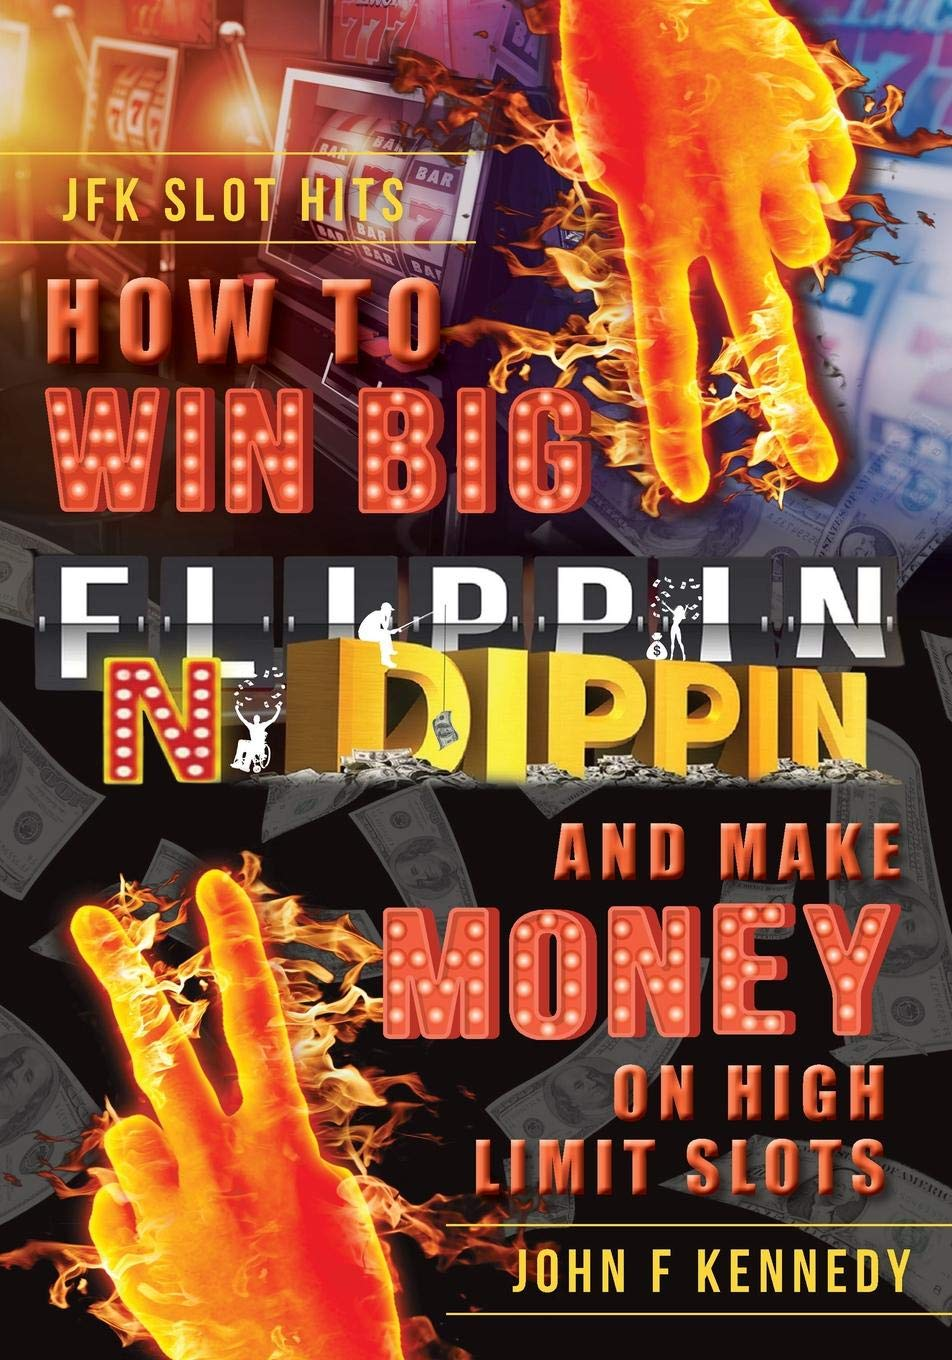 How to Win Big and Make Money on High Limit